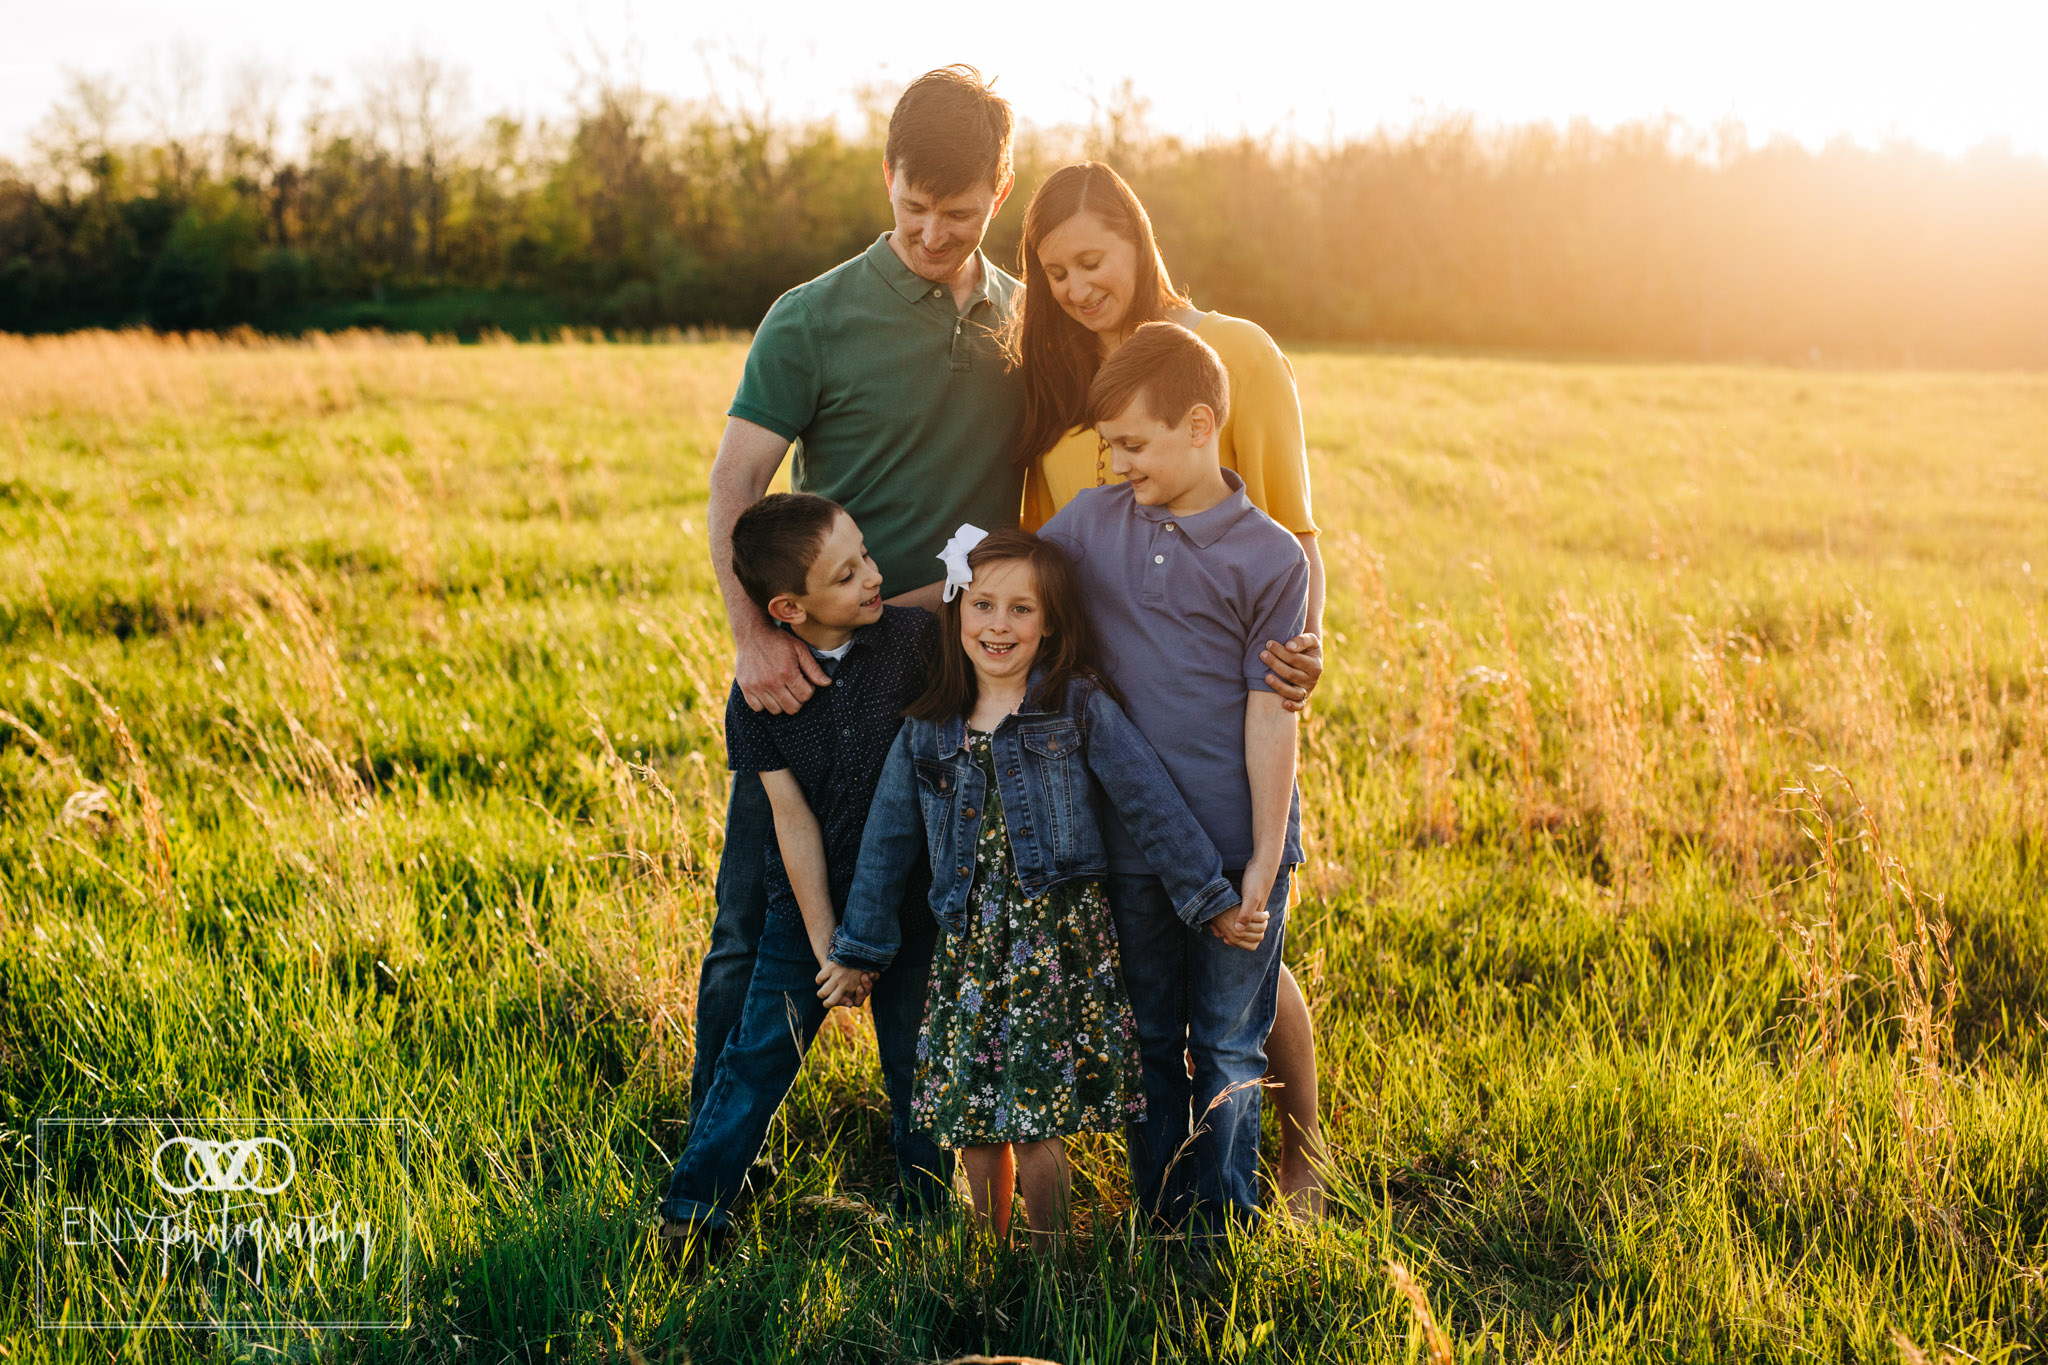 mount vernon columbus ohio family photographer (14).jpg